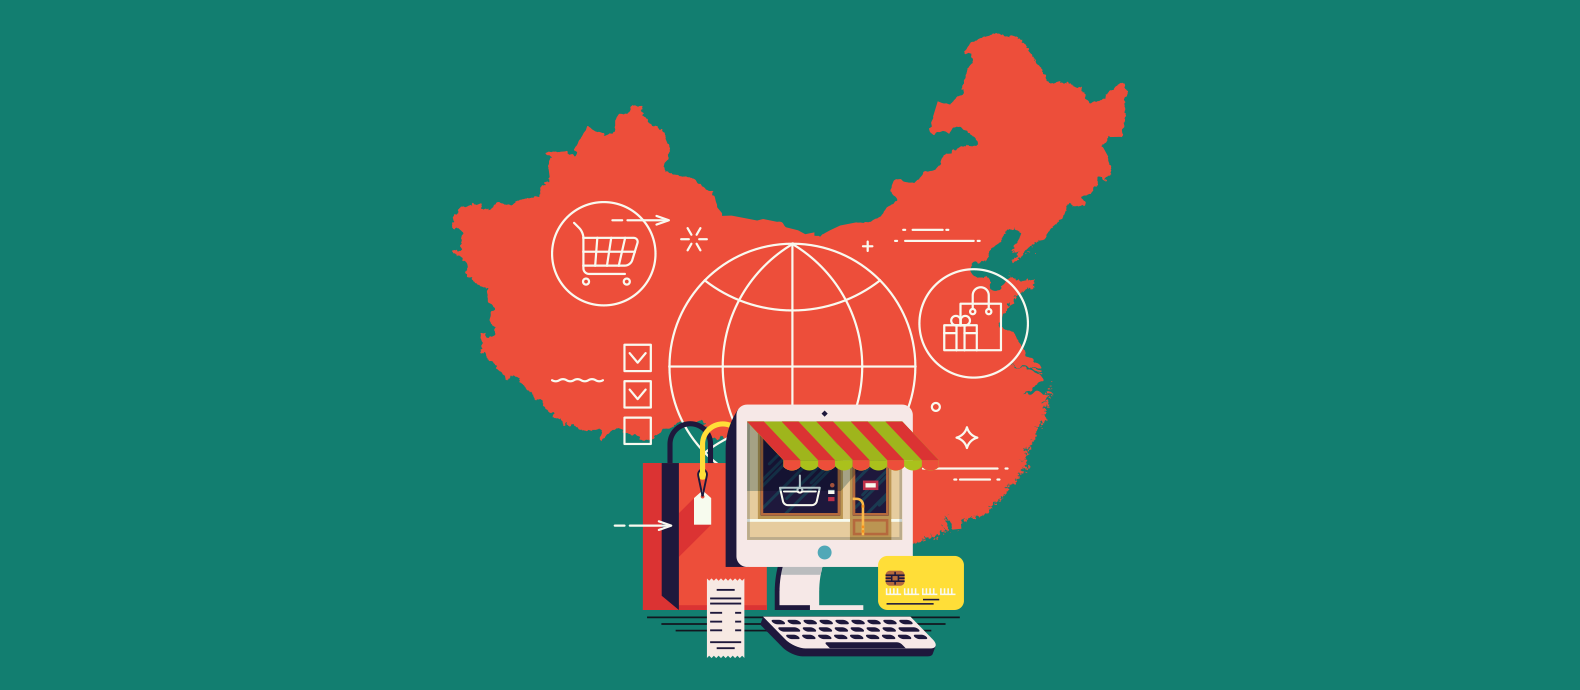 Knowing how to sell in China is important for any brand looking to expand